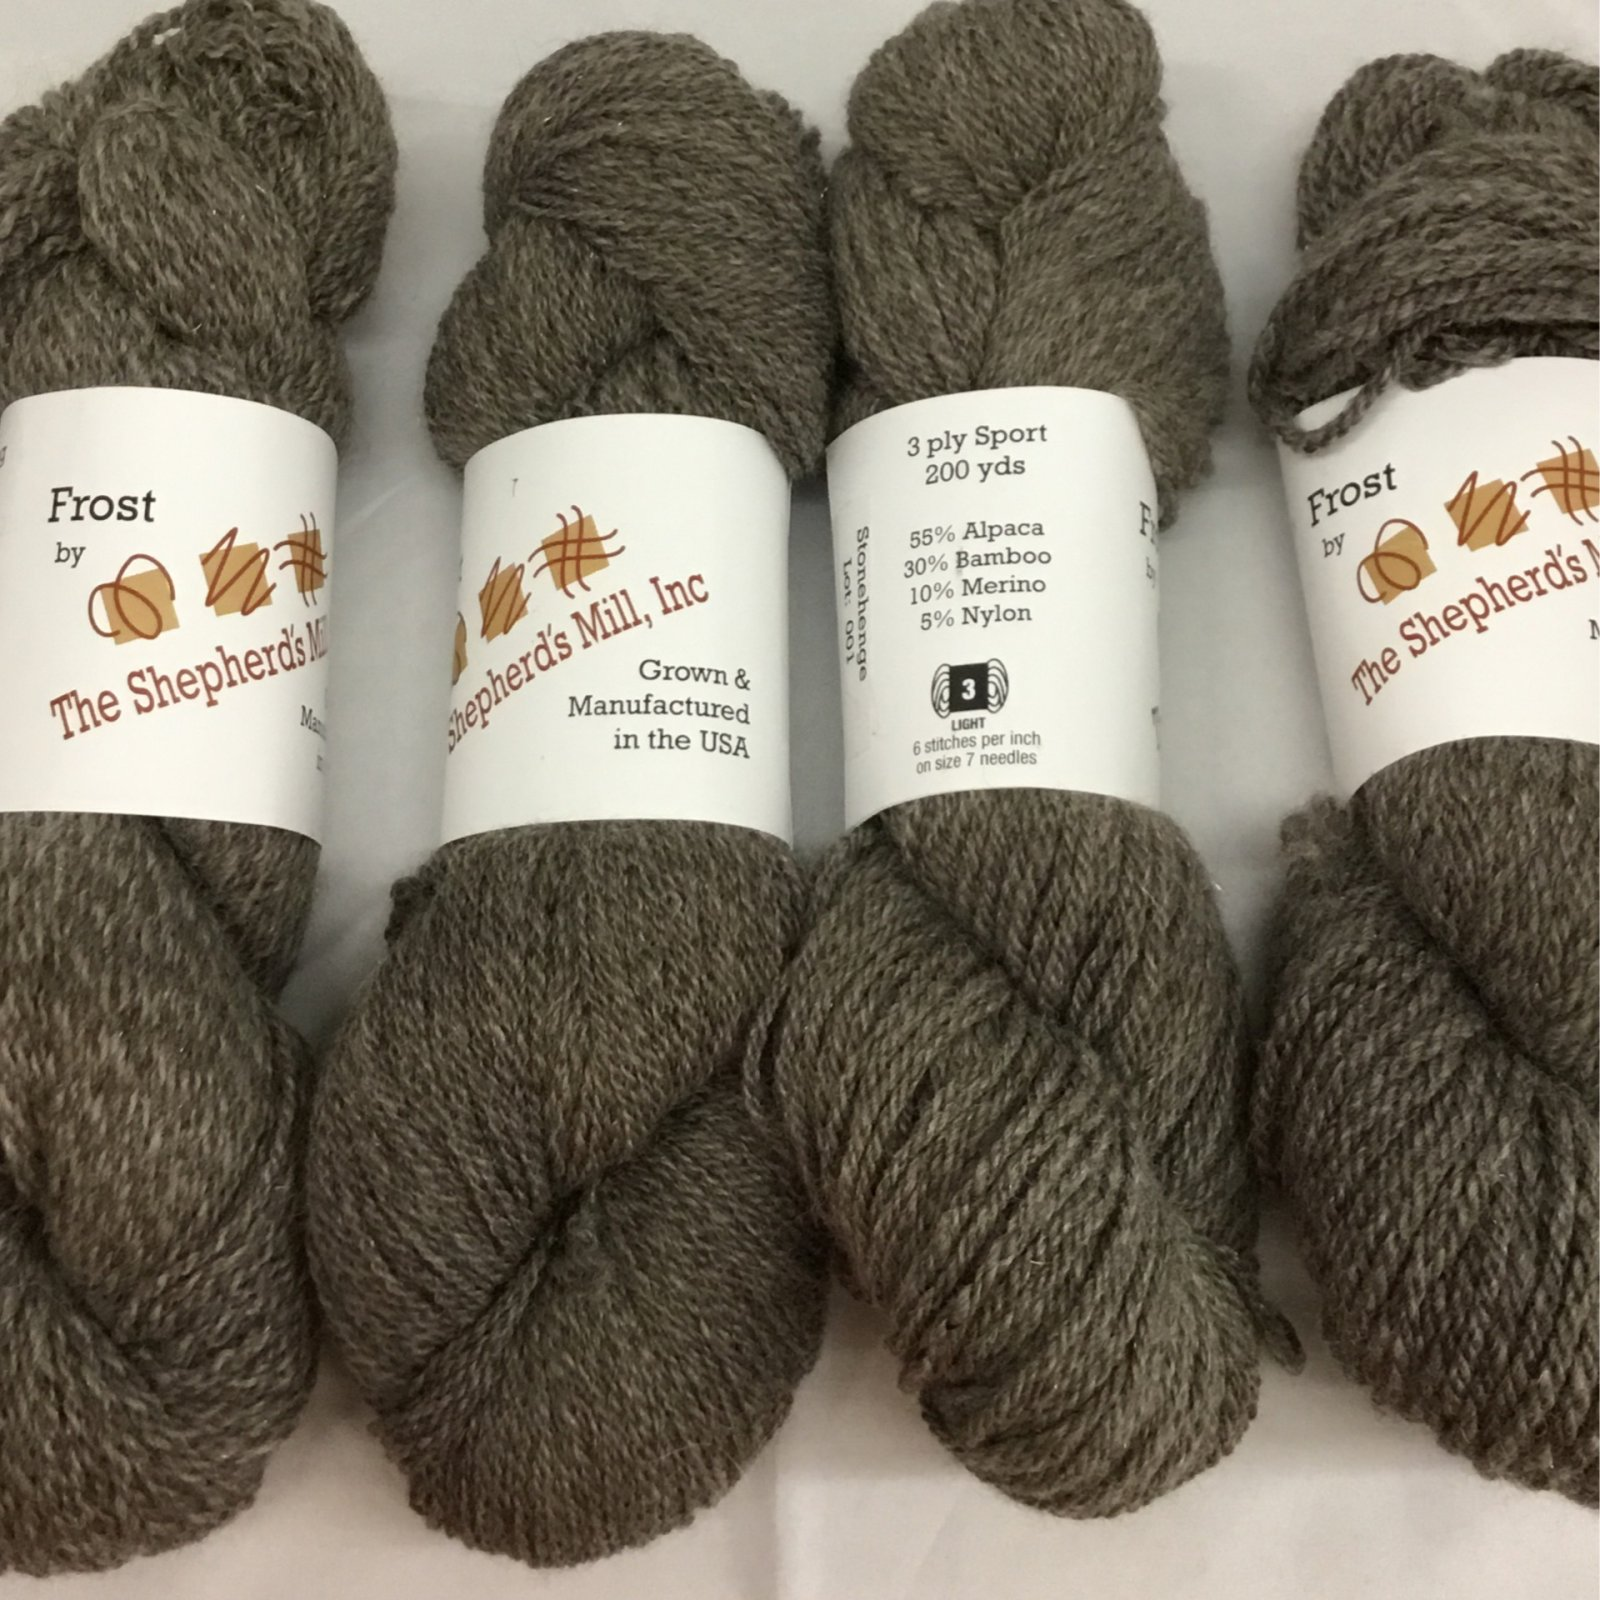 Frost Skein Stonehenge - Lace